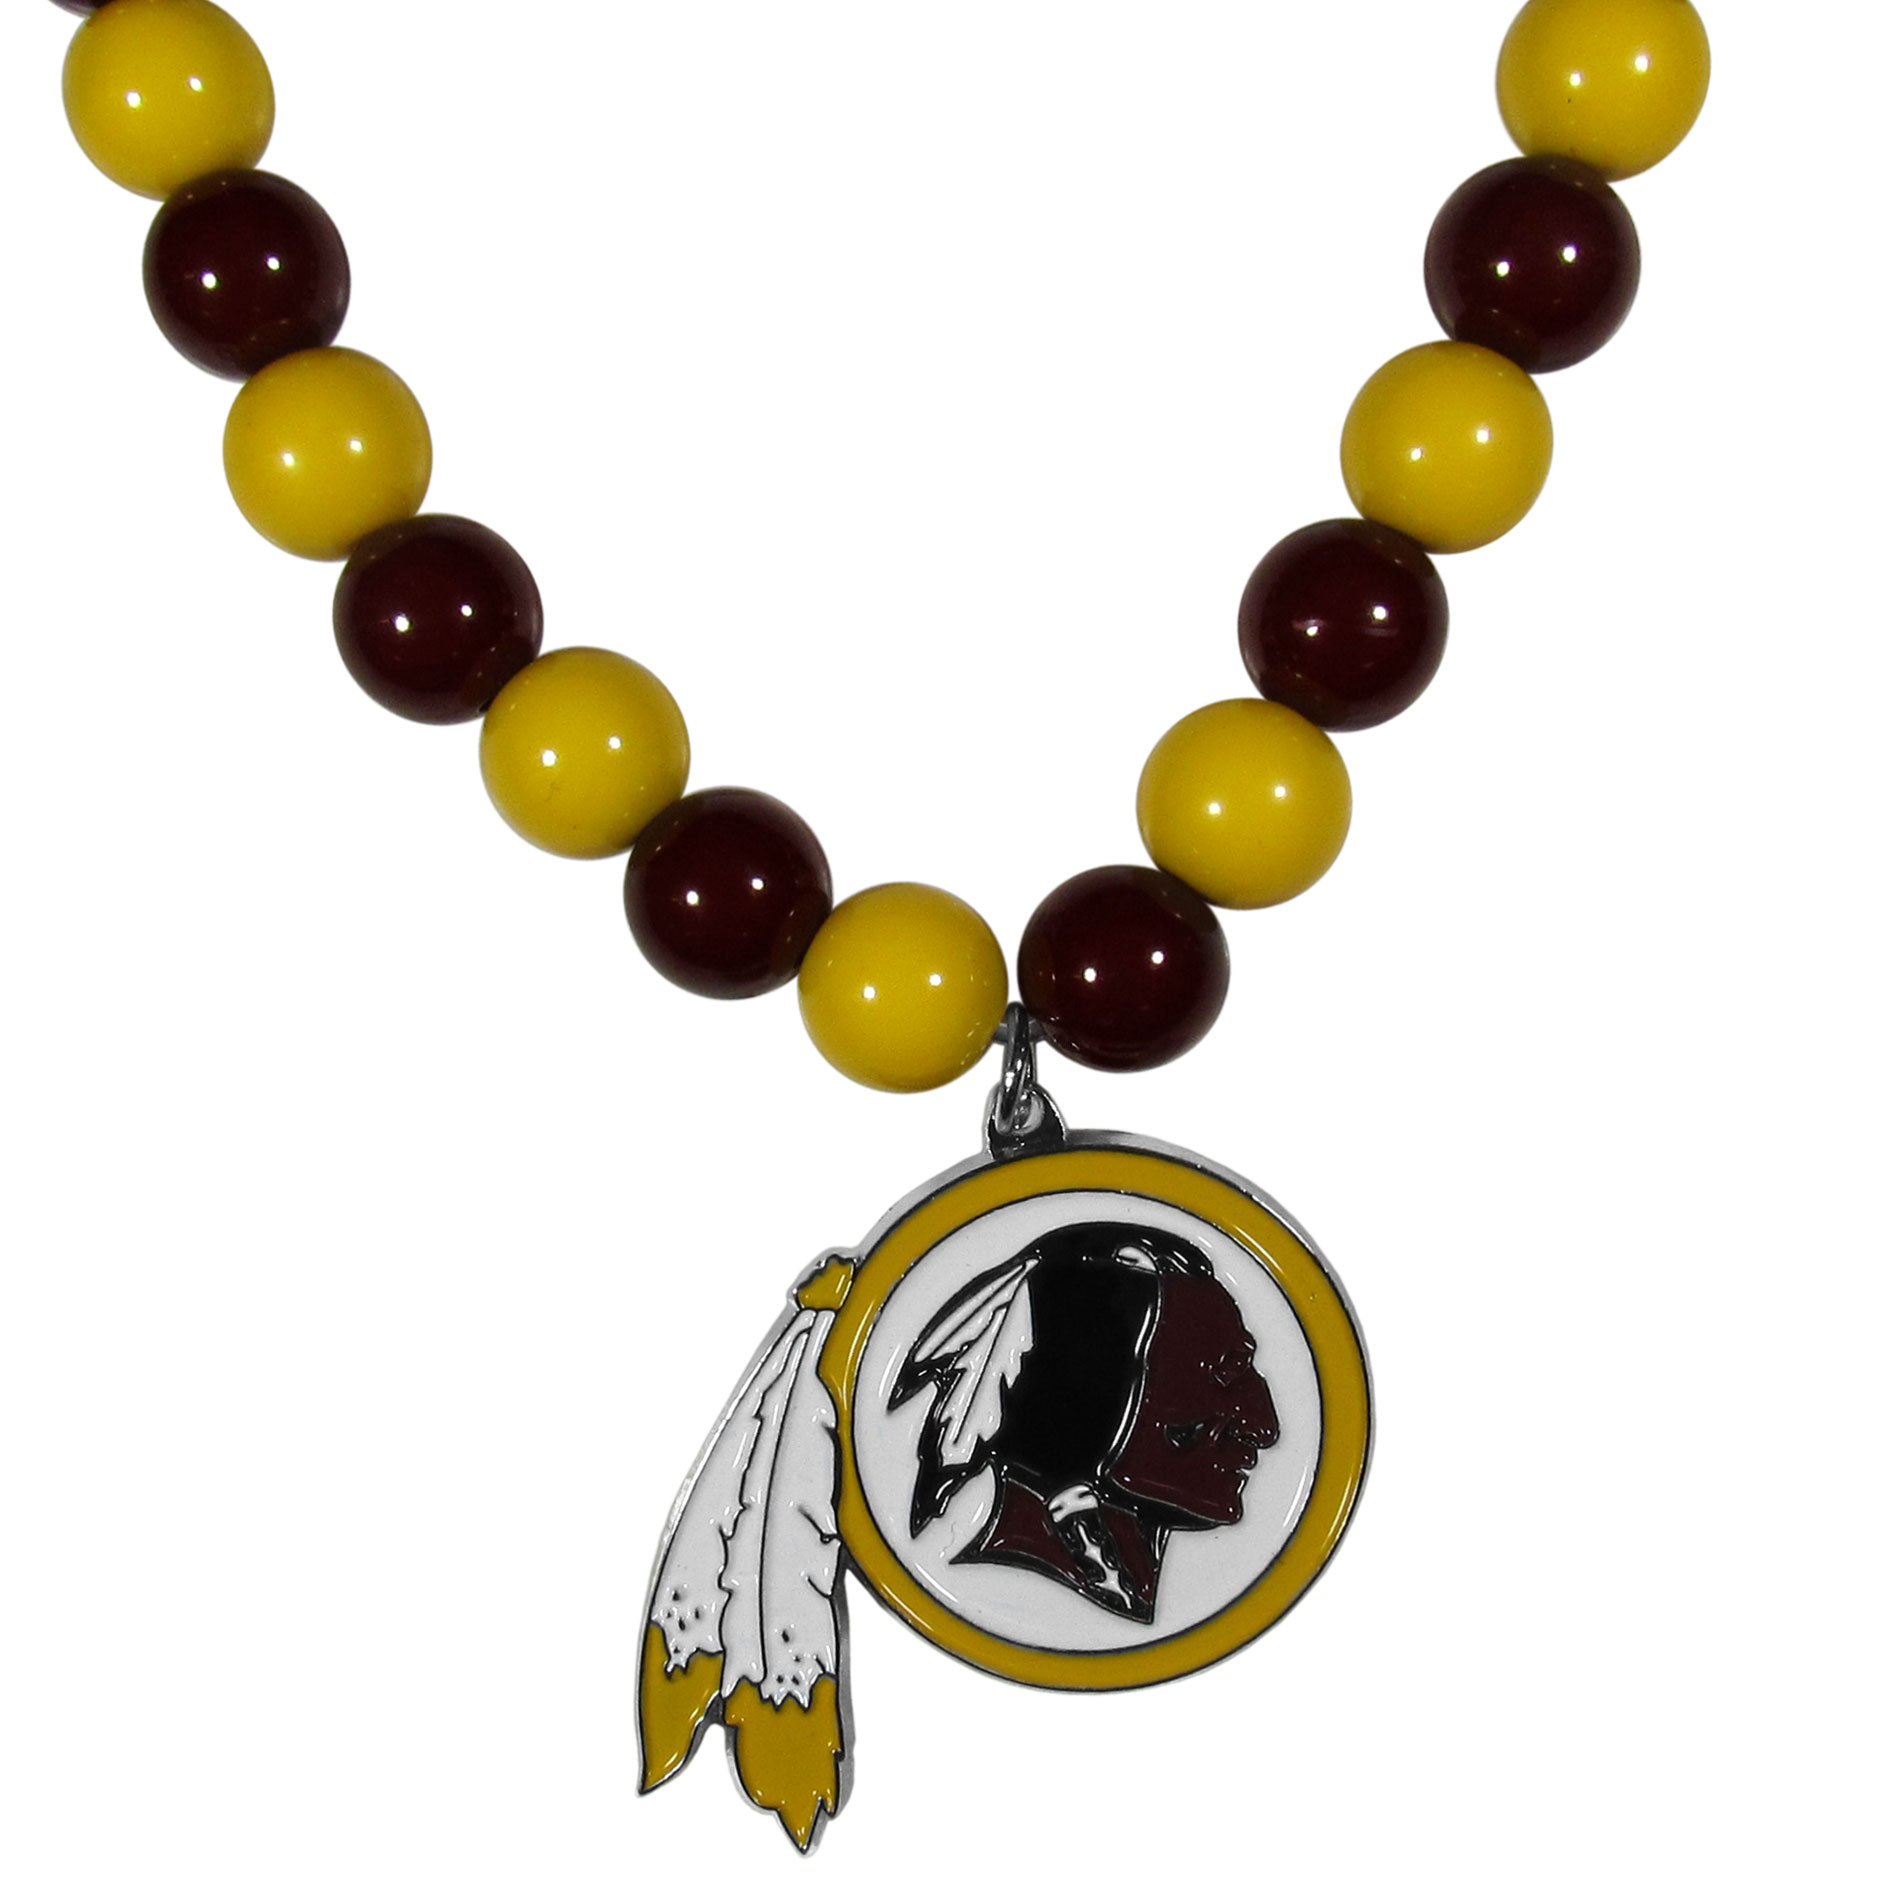 Washington Redskins Fan Bead Necklace - Make a big statement with our fan bead necklaces! These brightly colored necklace have a 24 inch string of alternating colored beads with an extra large, high-polish Washington Redskins pendant.